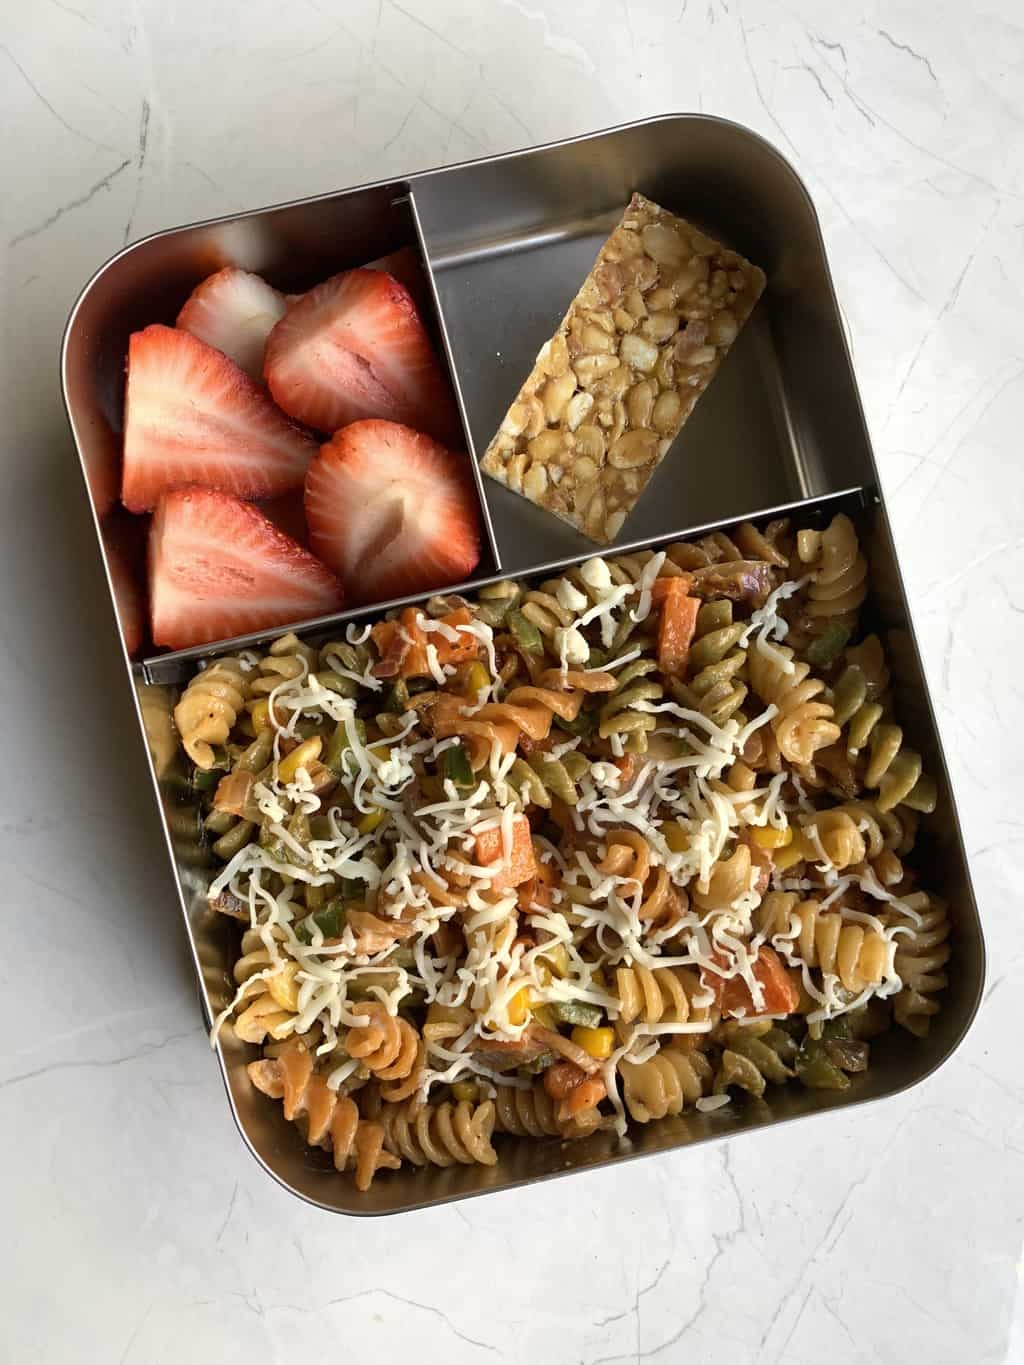 Healthy School Lunch Recipes that your kids will actually love! These recipes are filled with wholesome ingredients, packed with nutrients and will keep your kids satisfied all afternoon.